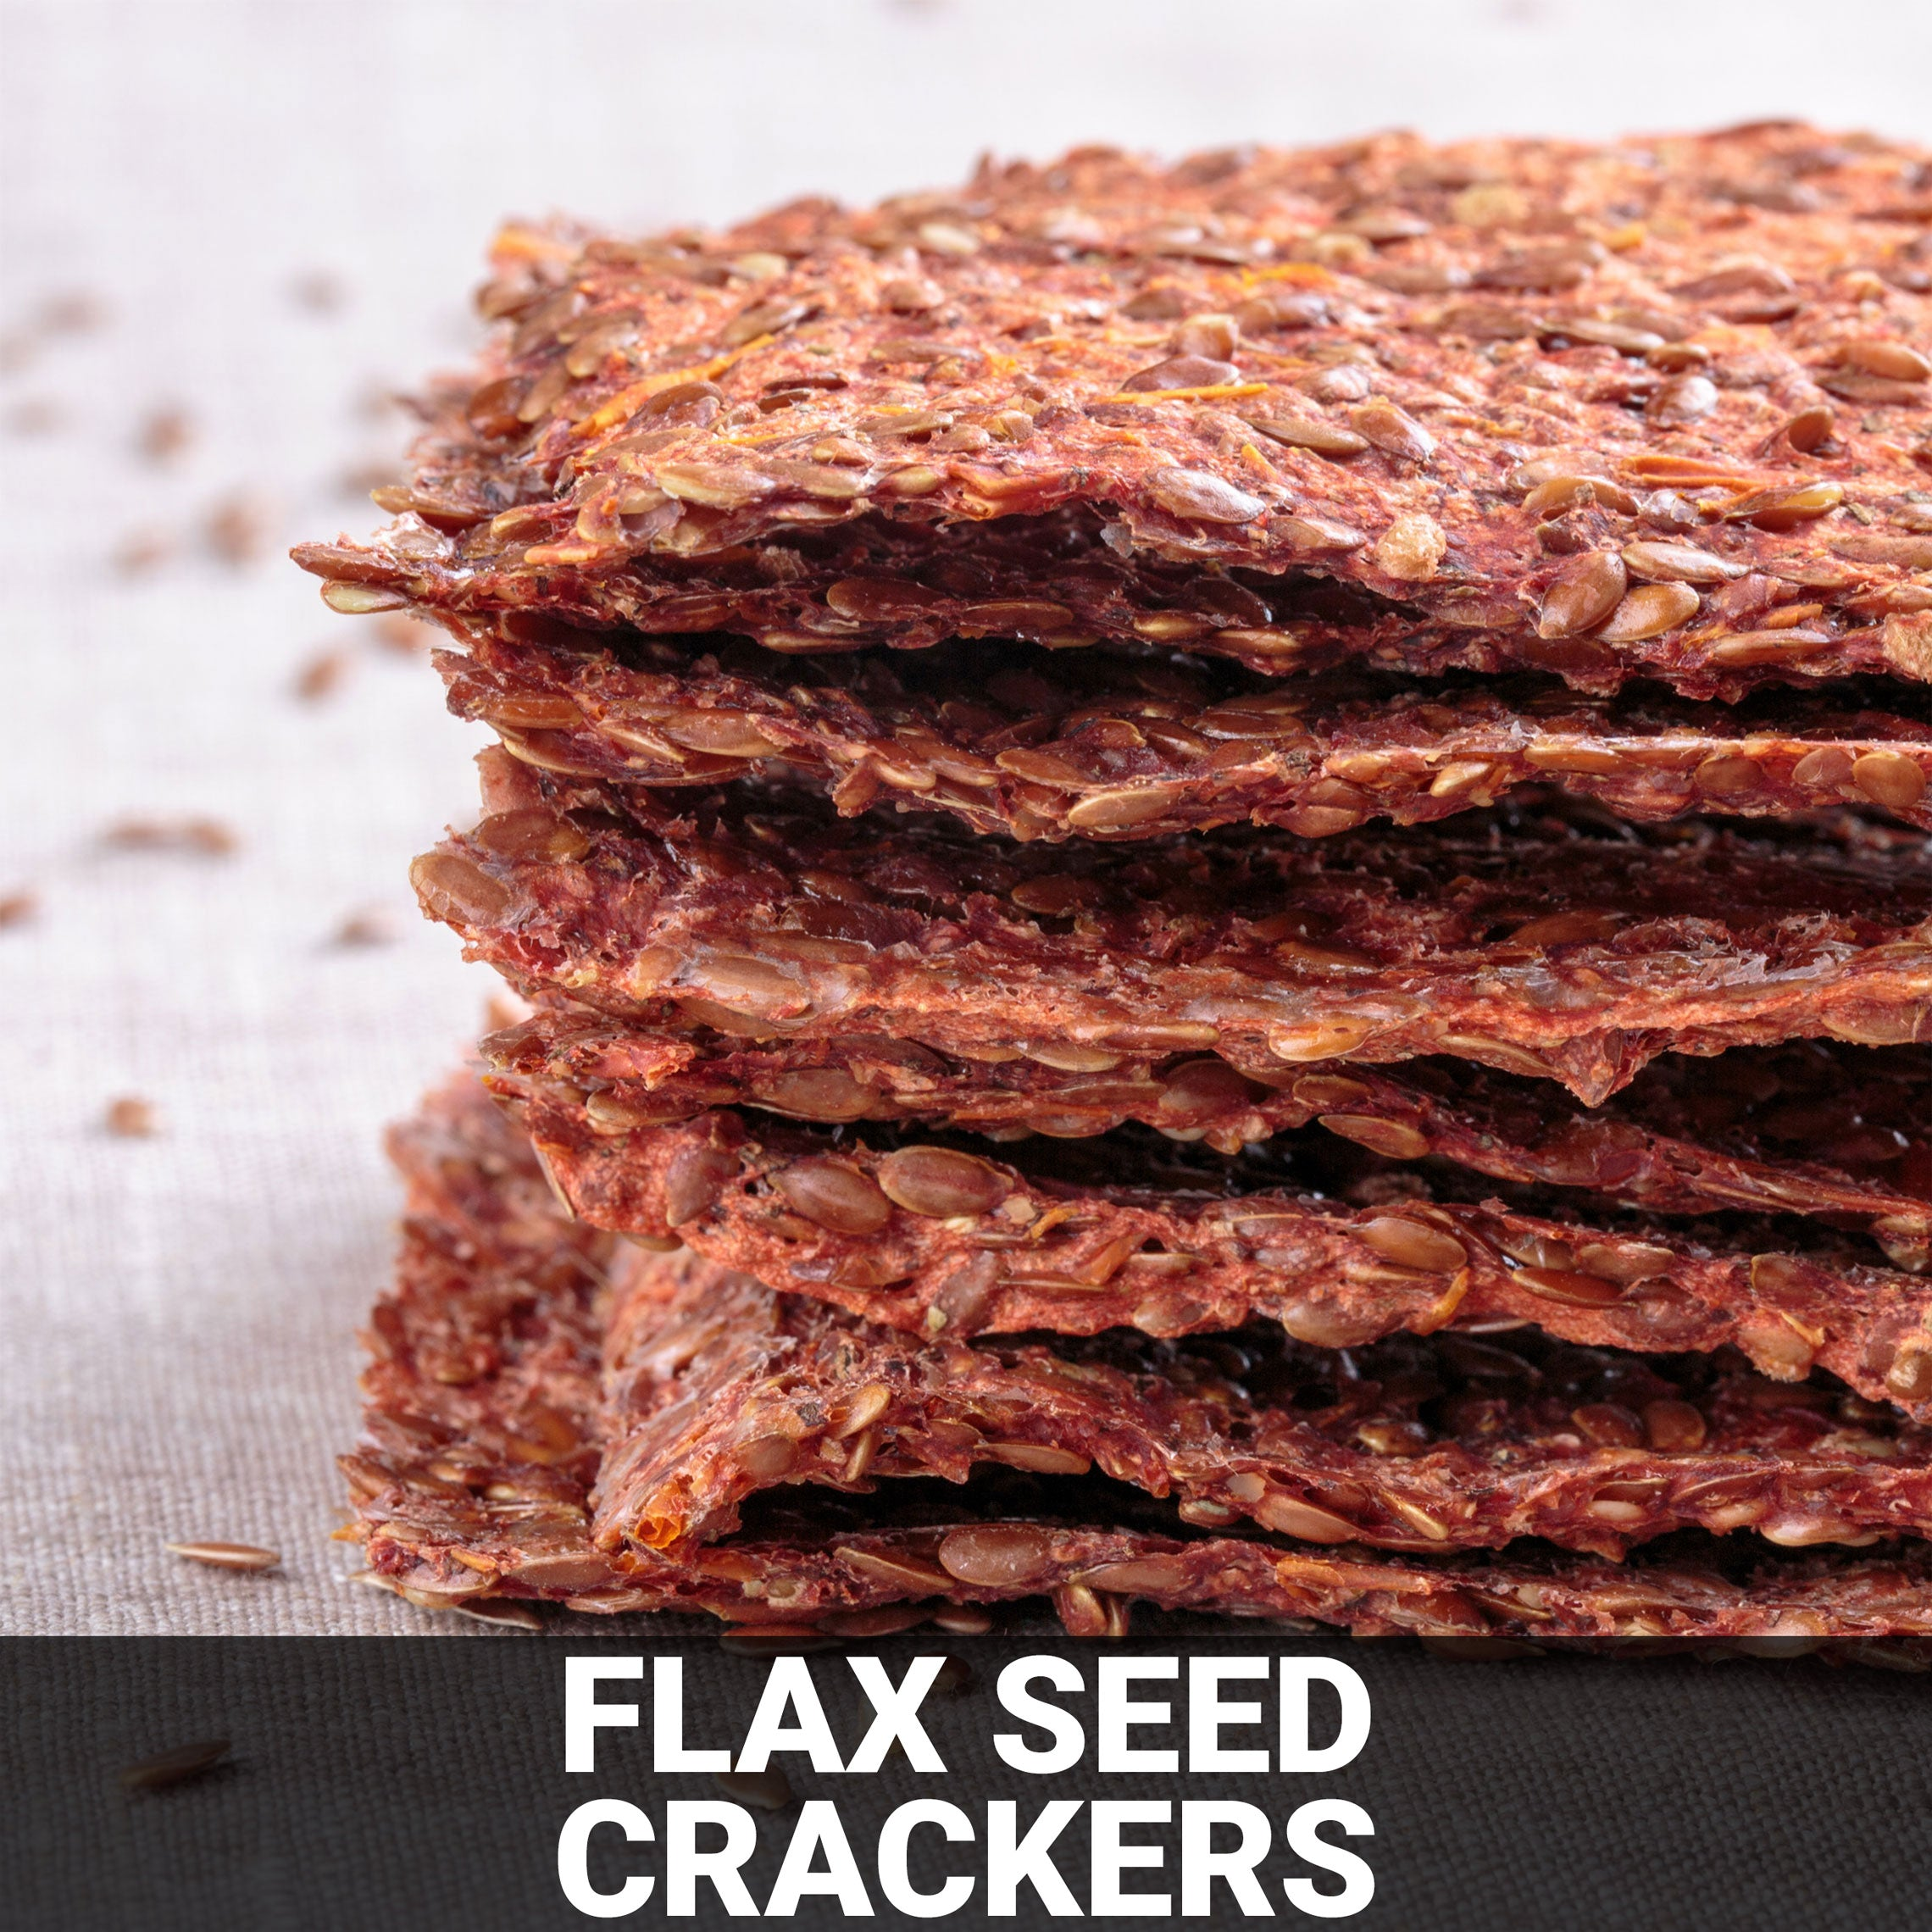 Flax Seed Crackers Recipe - Foods Alive